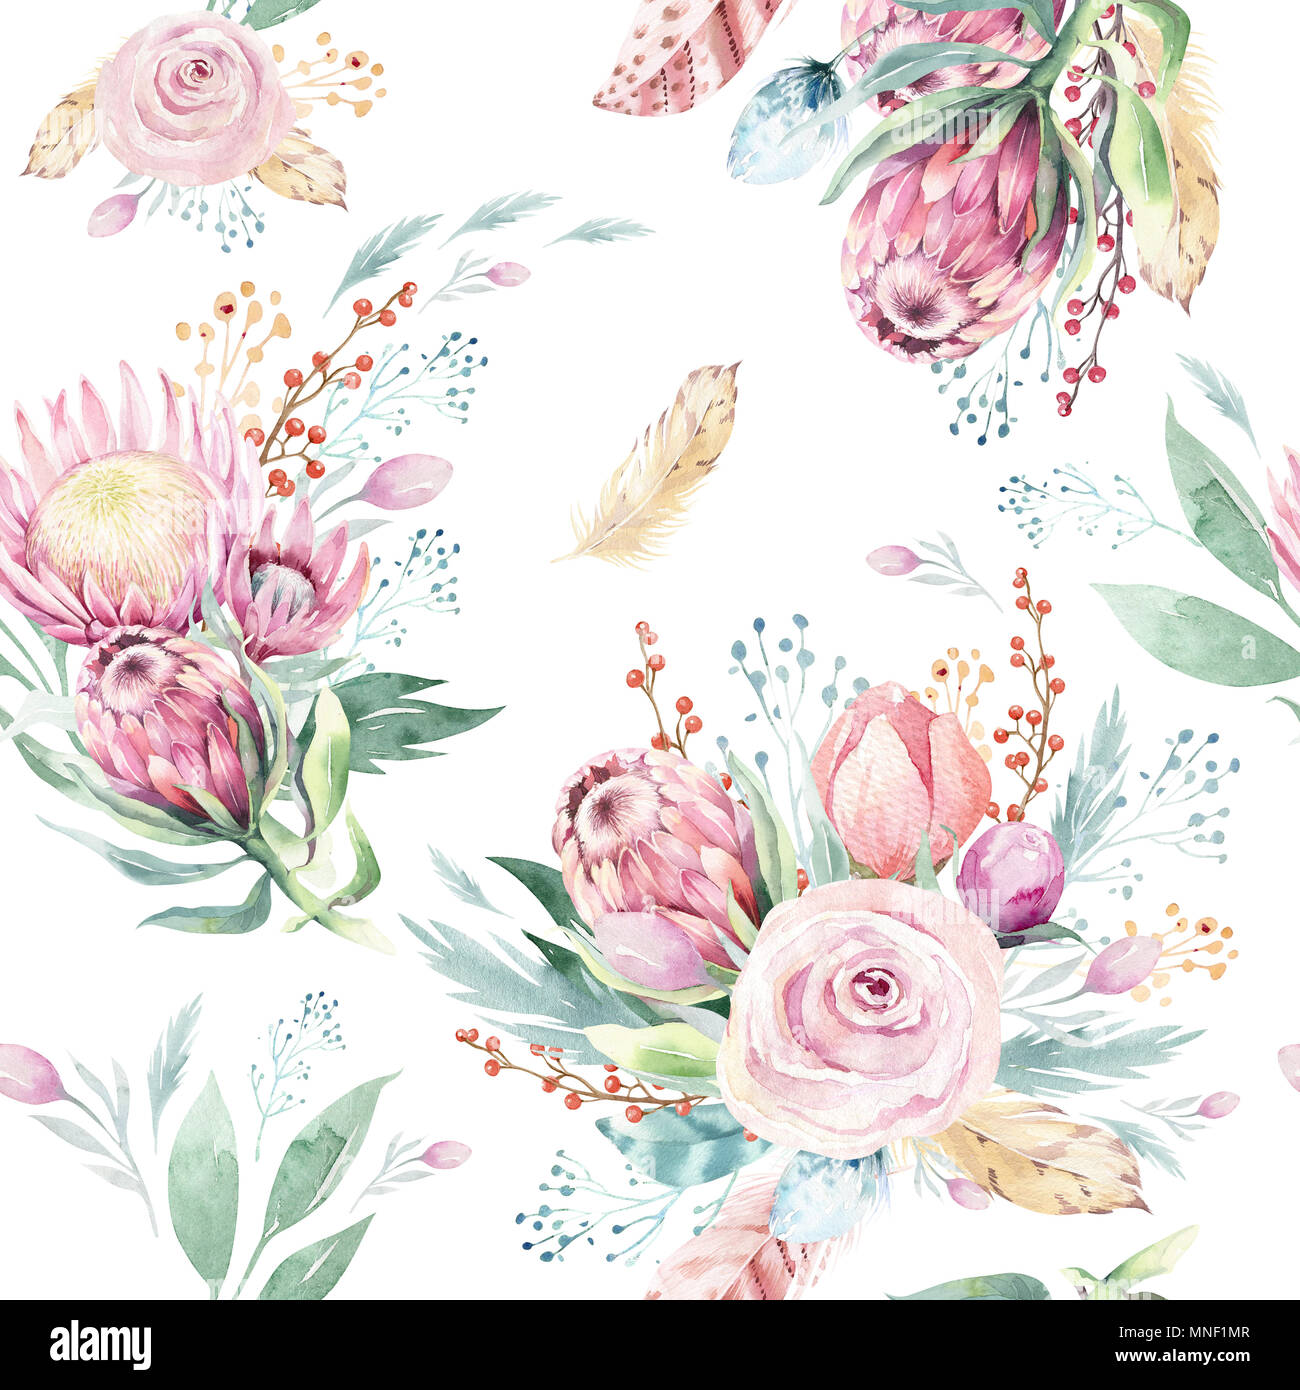 Hand Drawing Seamless Watercolor Floral Patterns With Protea Rose